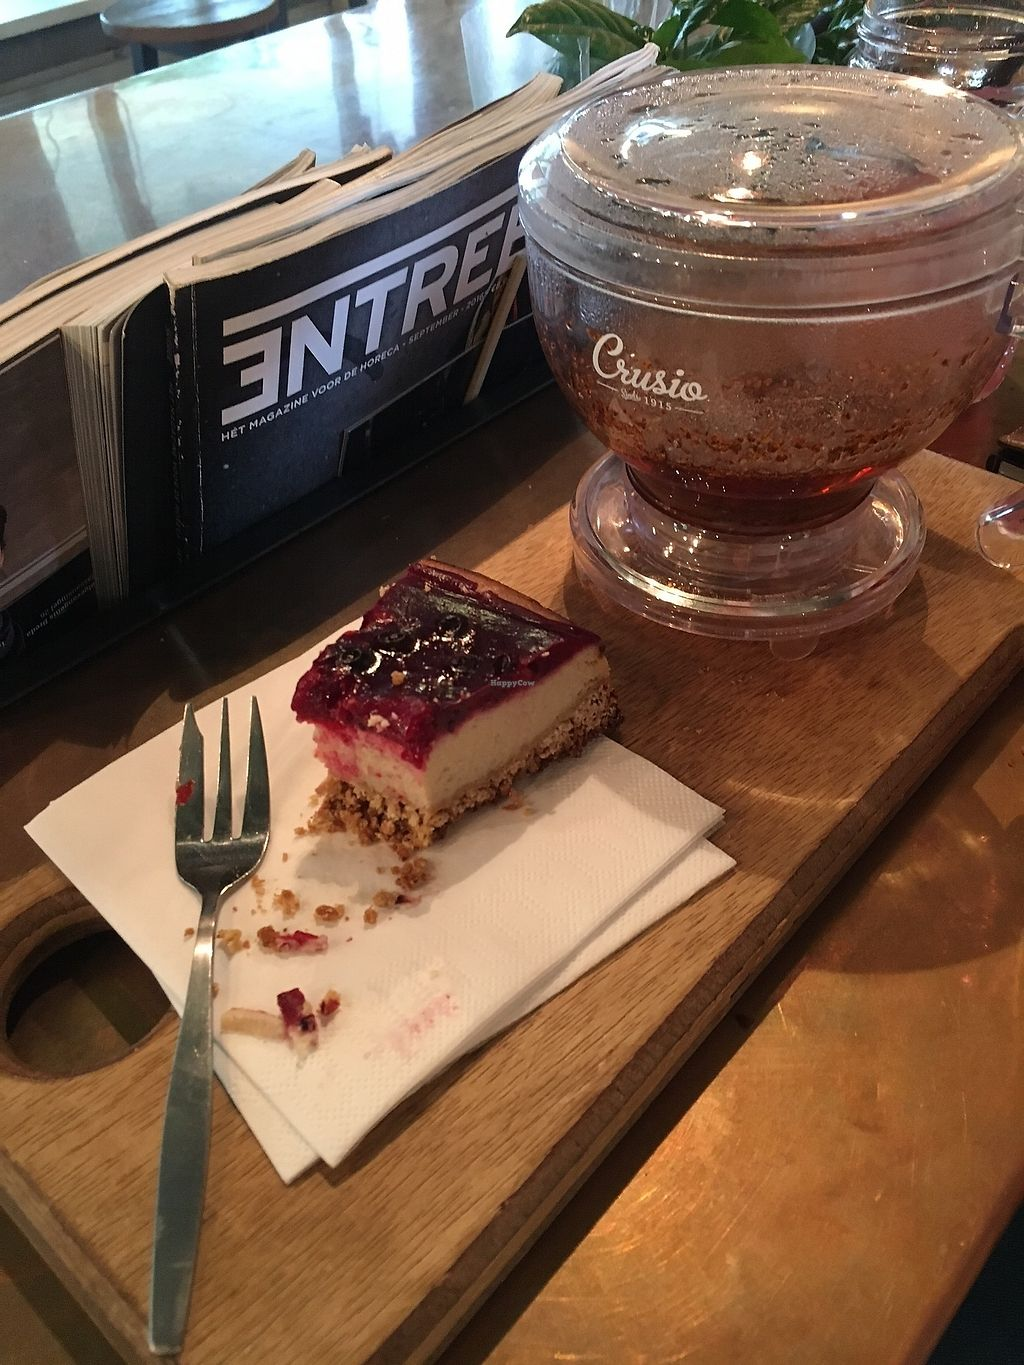 """Photo of Coffeelab  by <a href=""""/members/profile/NoraChorfi"""">NoraChorfi</a> <br/>Vegan cheescake and Rooibos tea <br/> July 17, 2017  - <a href='/contact/abuse/image/70534/281363'>Report</a>"""